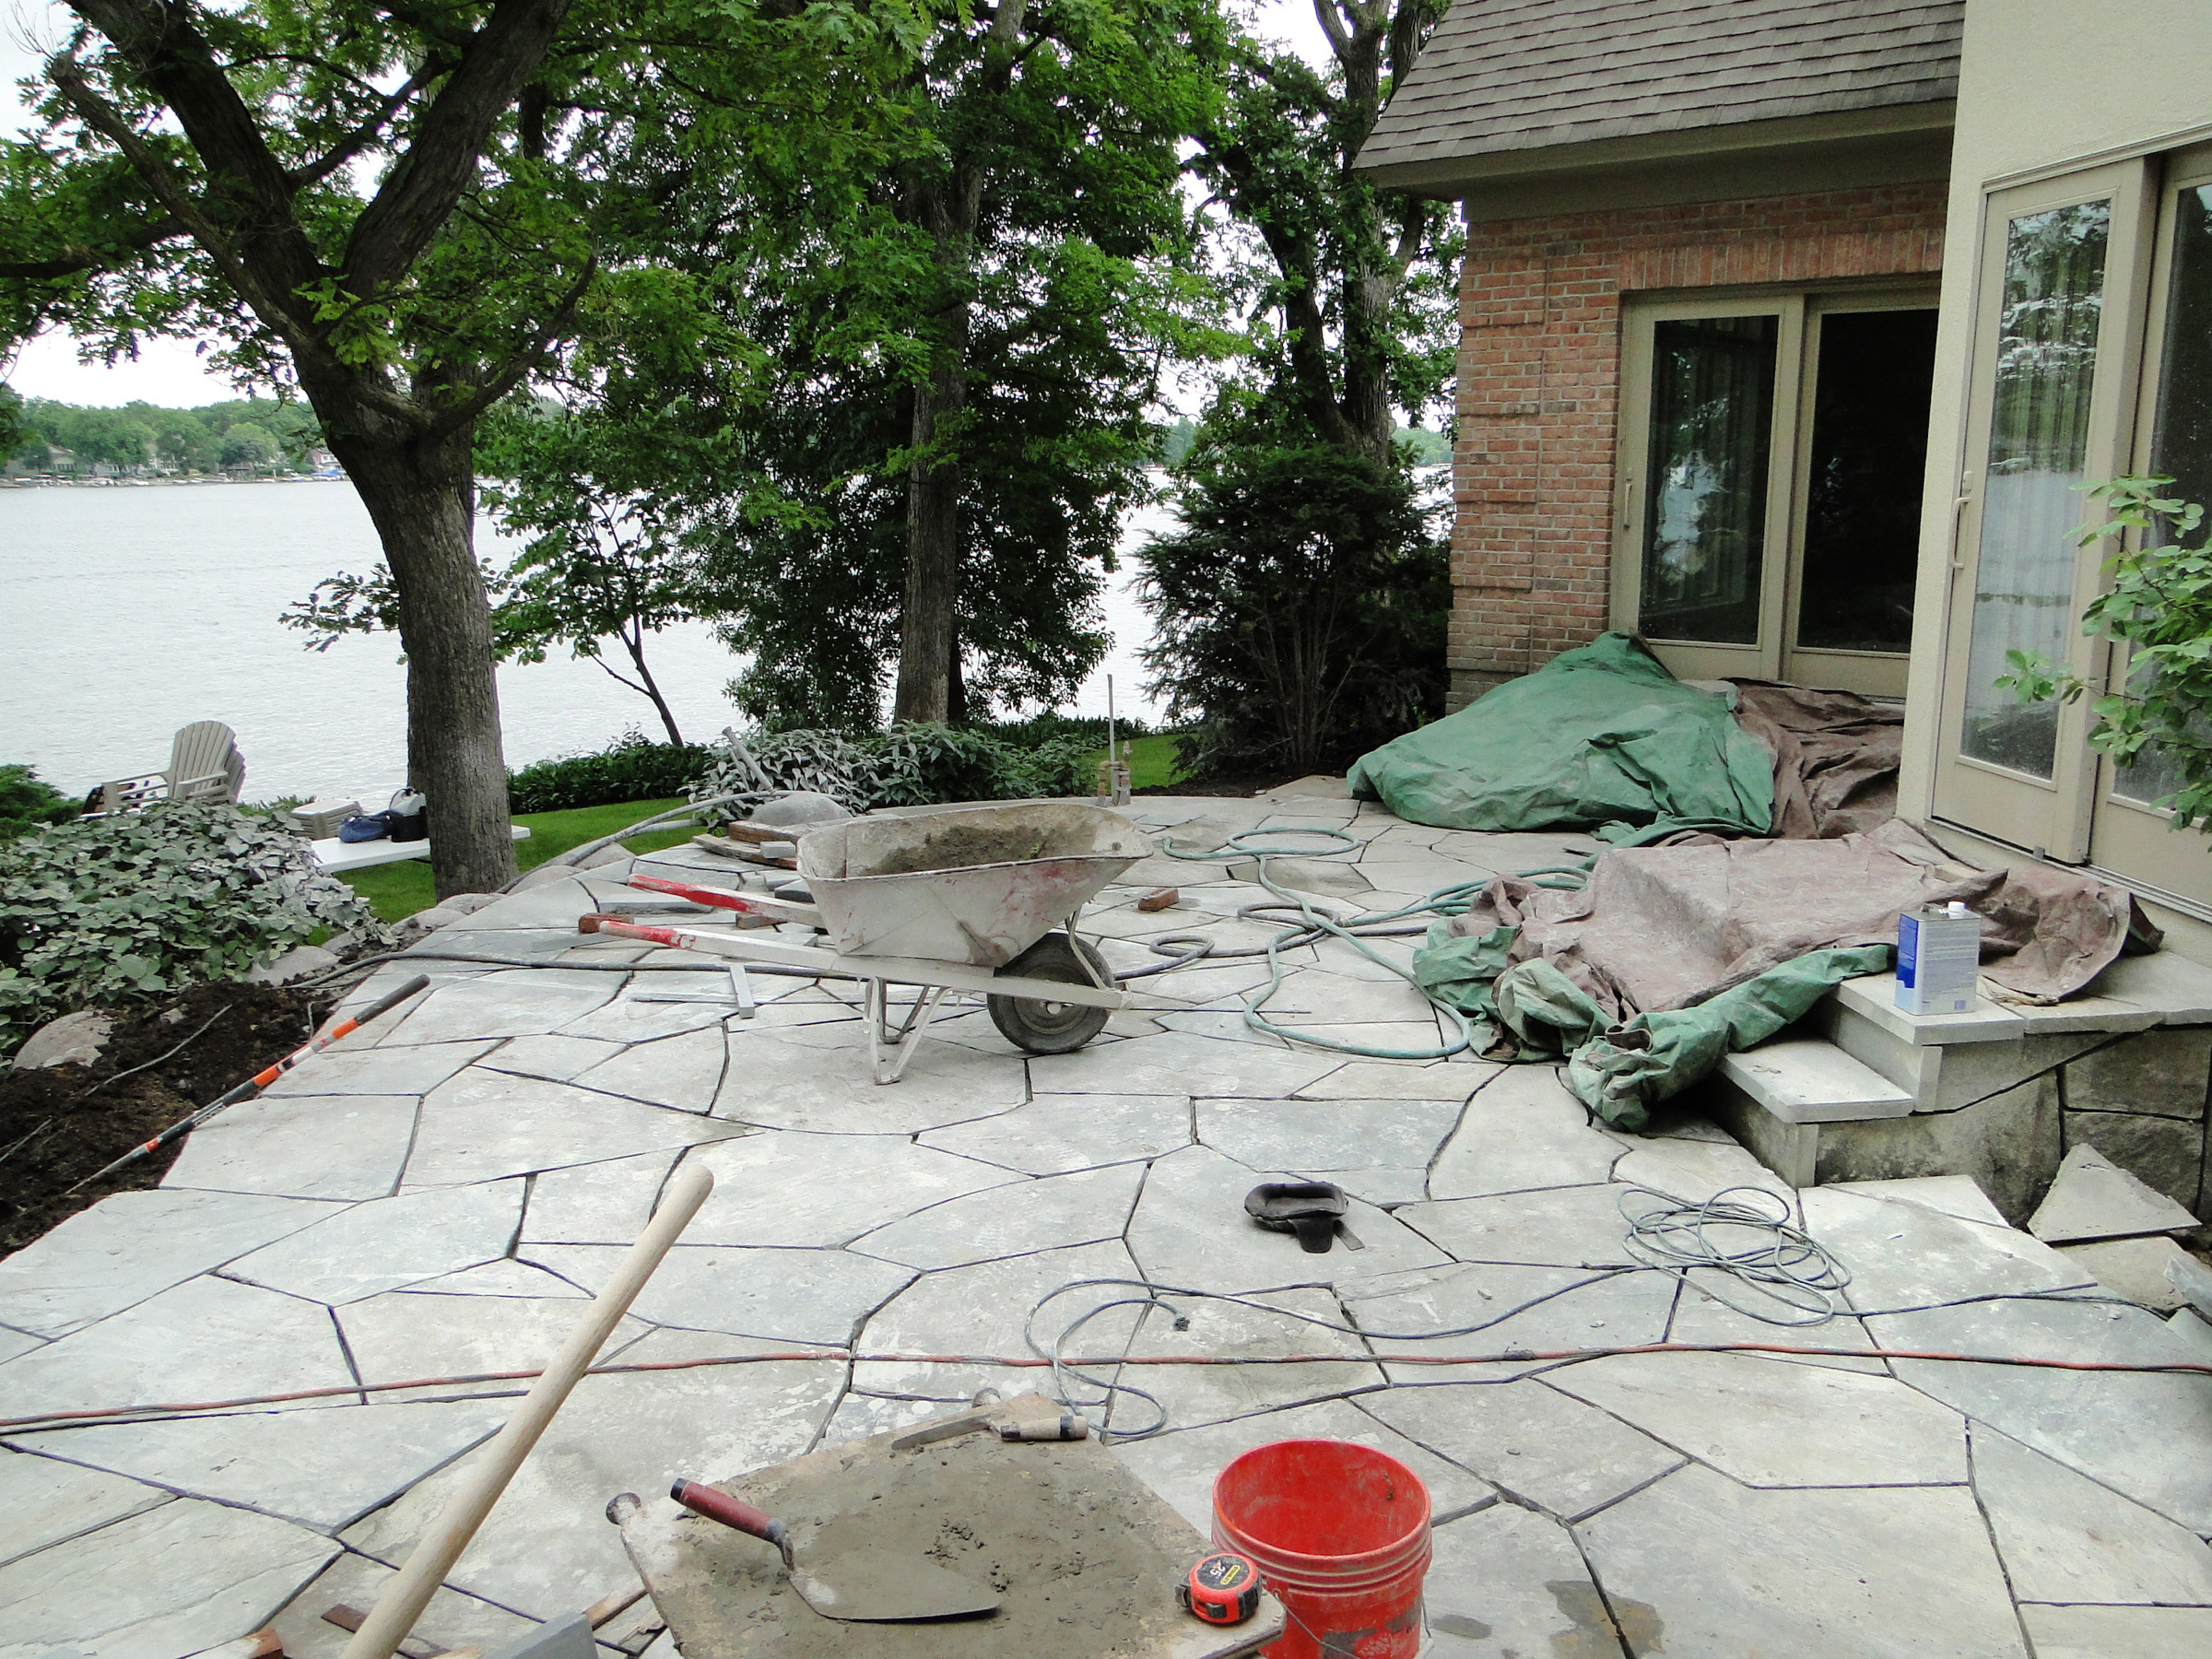 Irregular full range blue stone will replace the old concrete patio